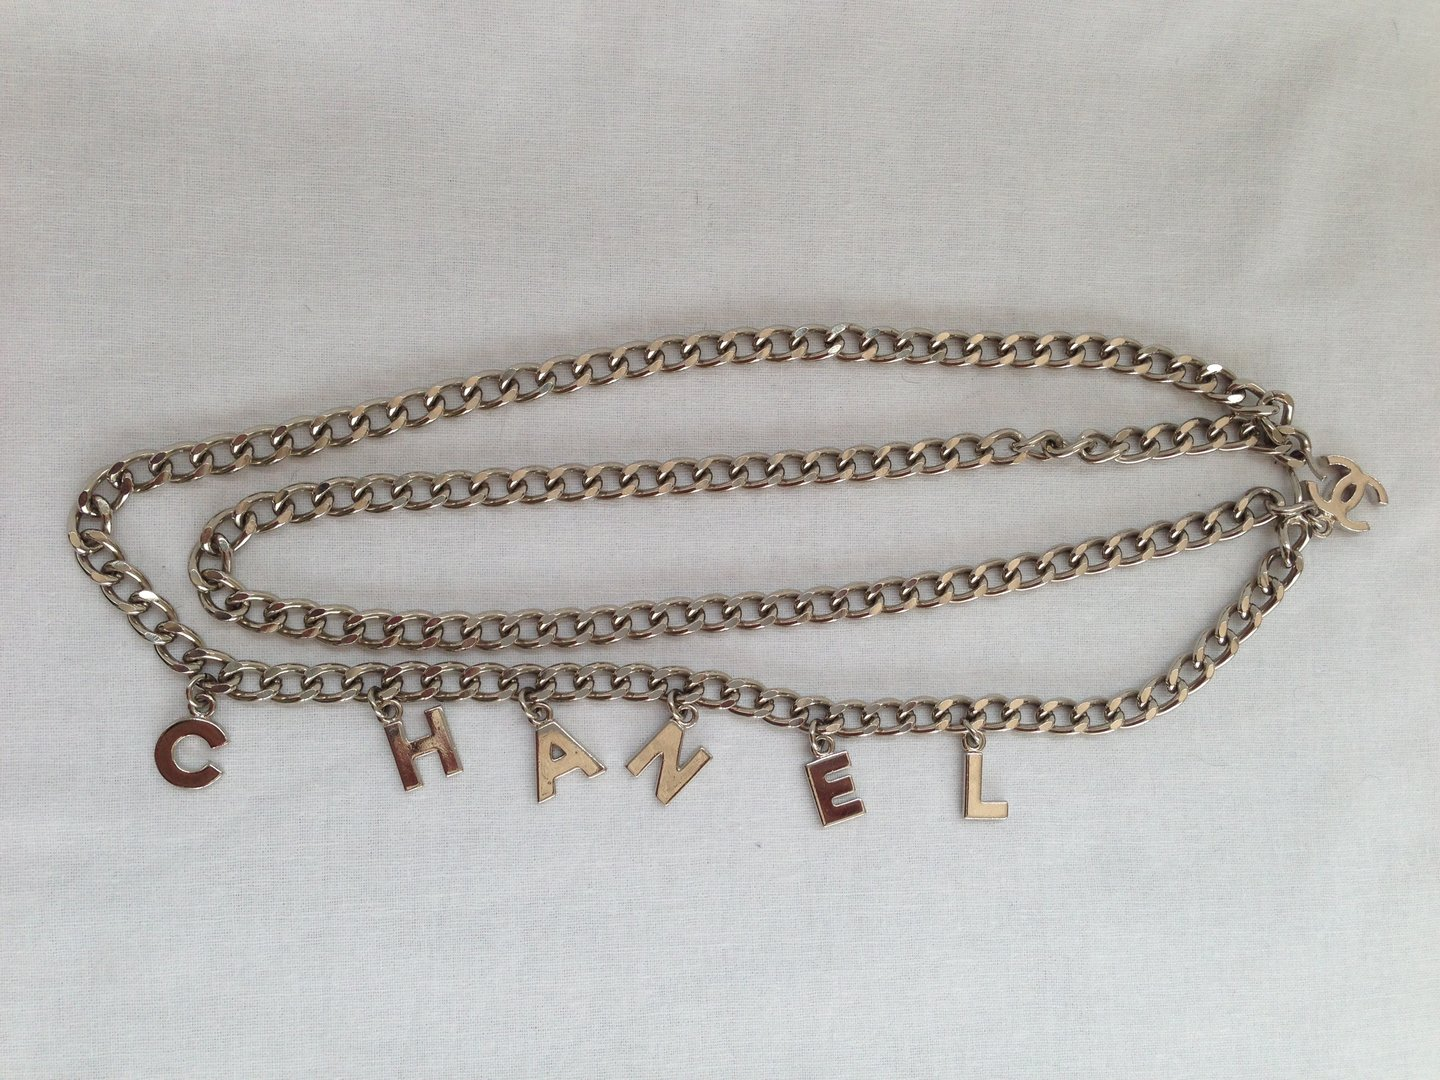 Chanel Necklace Belt Silver Letters